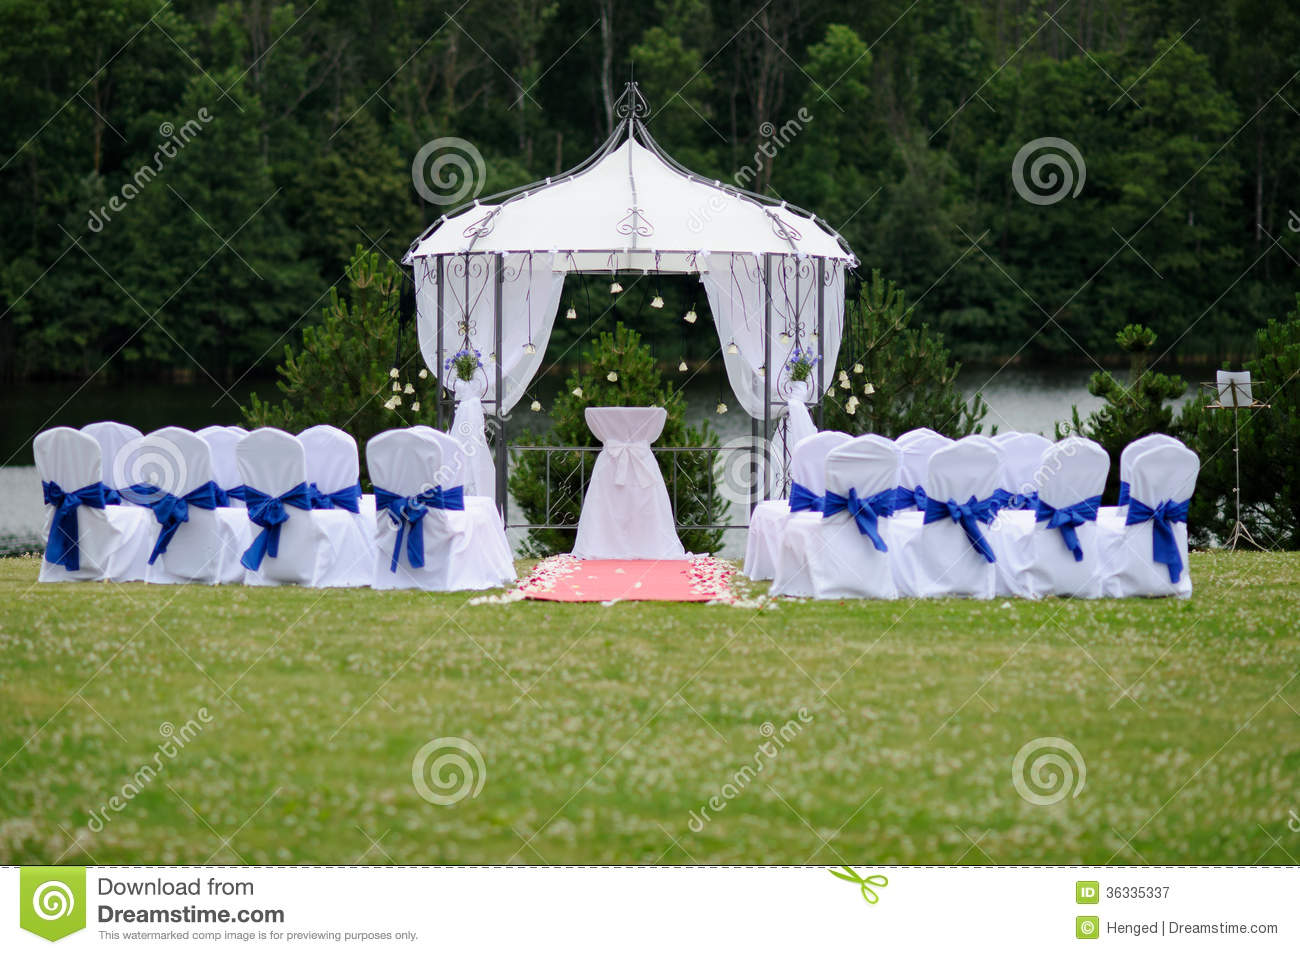 outdoor wedding place stock image image of arch wedding 36335337. Black Bedroom Furniture Sets. Home Design Ideas